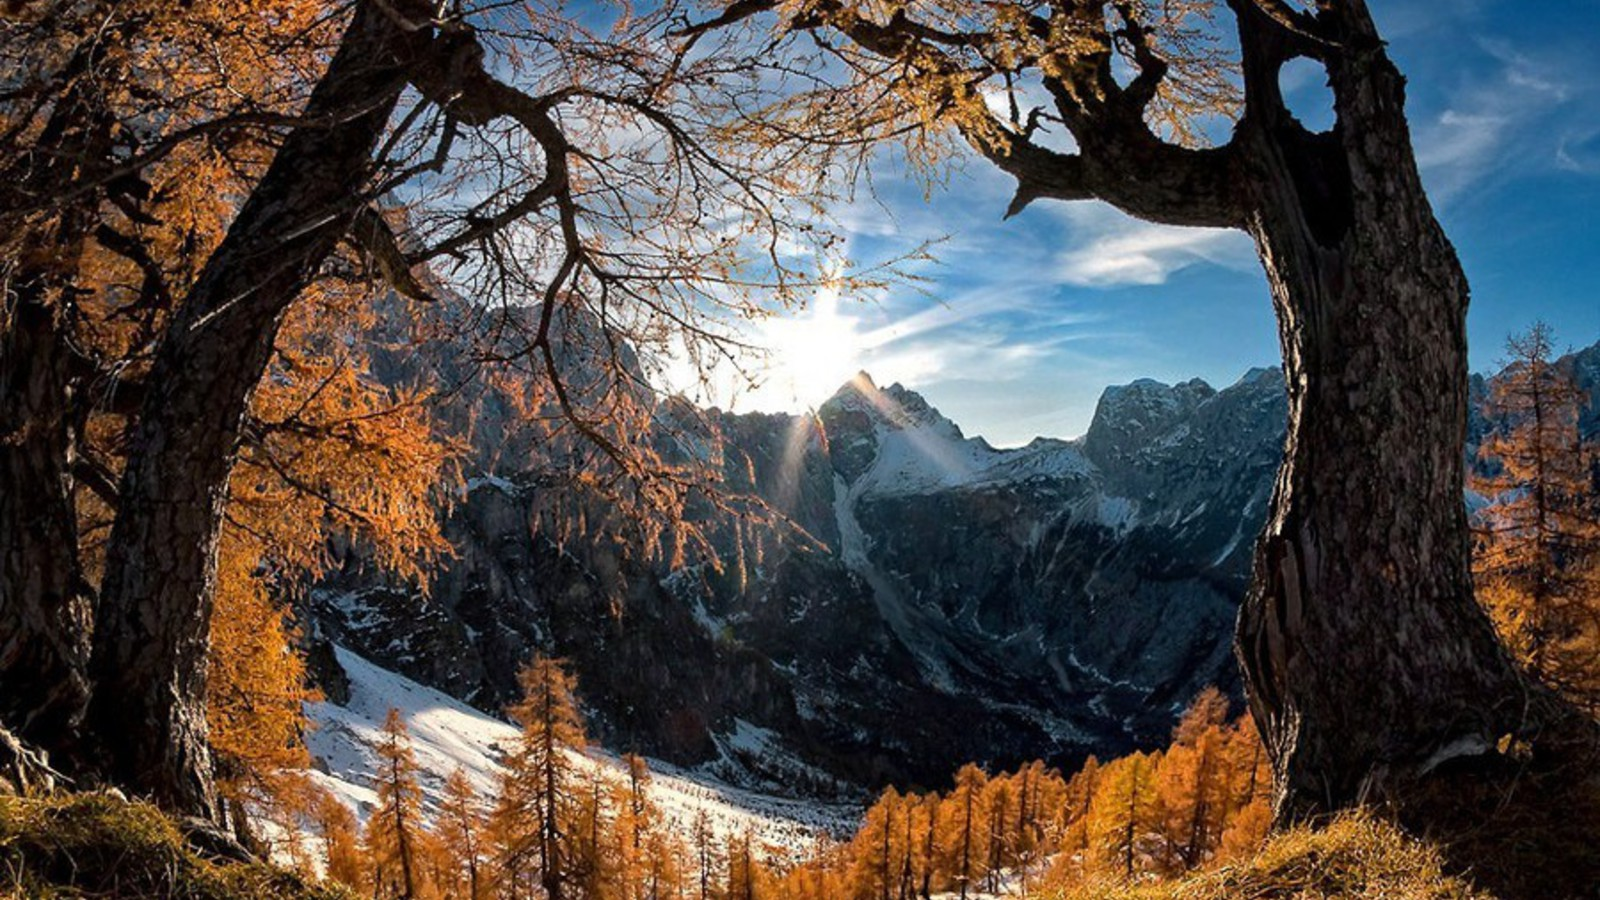 Best Iphone 5 Home Screen Wallpapers Mountains Snow Sun Trees Summer Spring Wallpaper